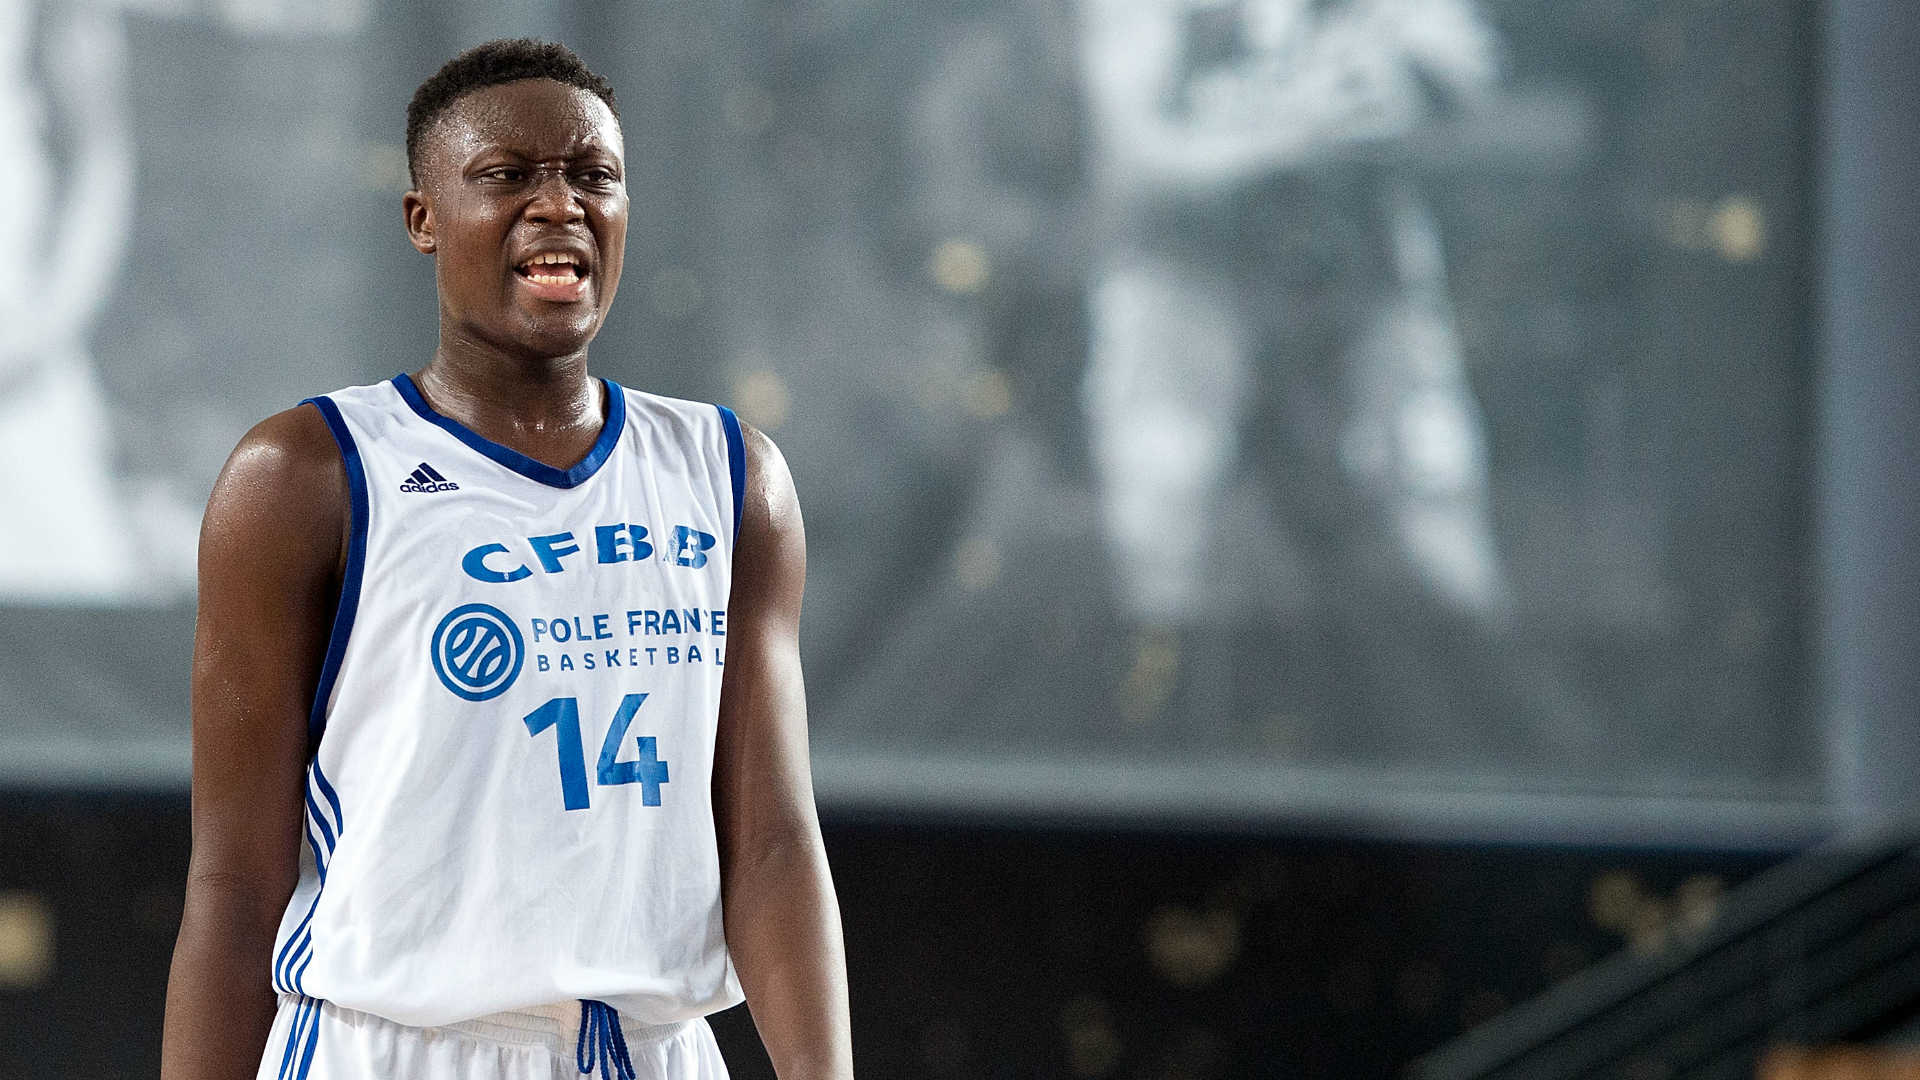 NBA Draft 2019: French teen Sekou Doumbouya, potential lottery pick, enters draft